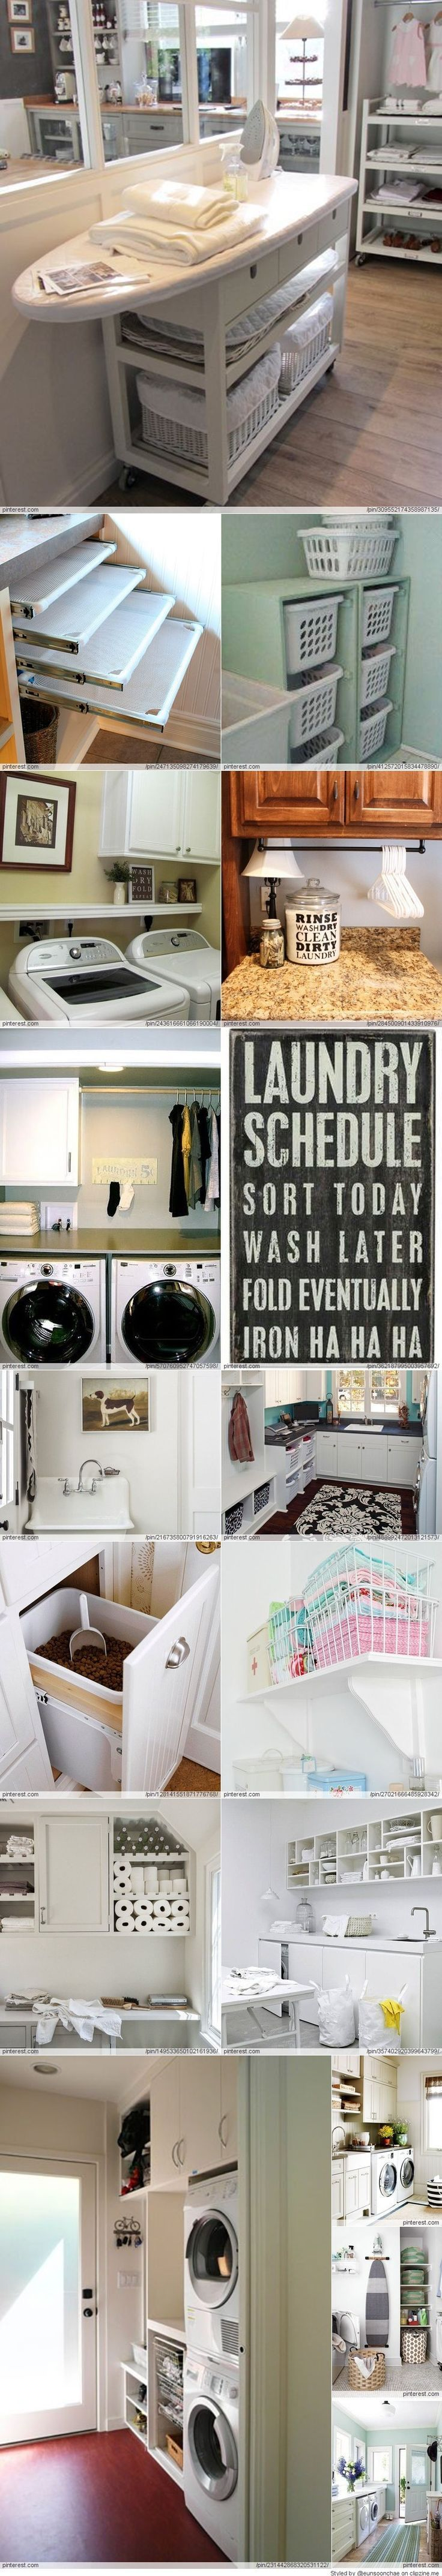 Laundry Room Ideas like the ironing board idea maybe with current kitchen island